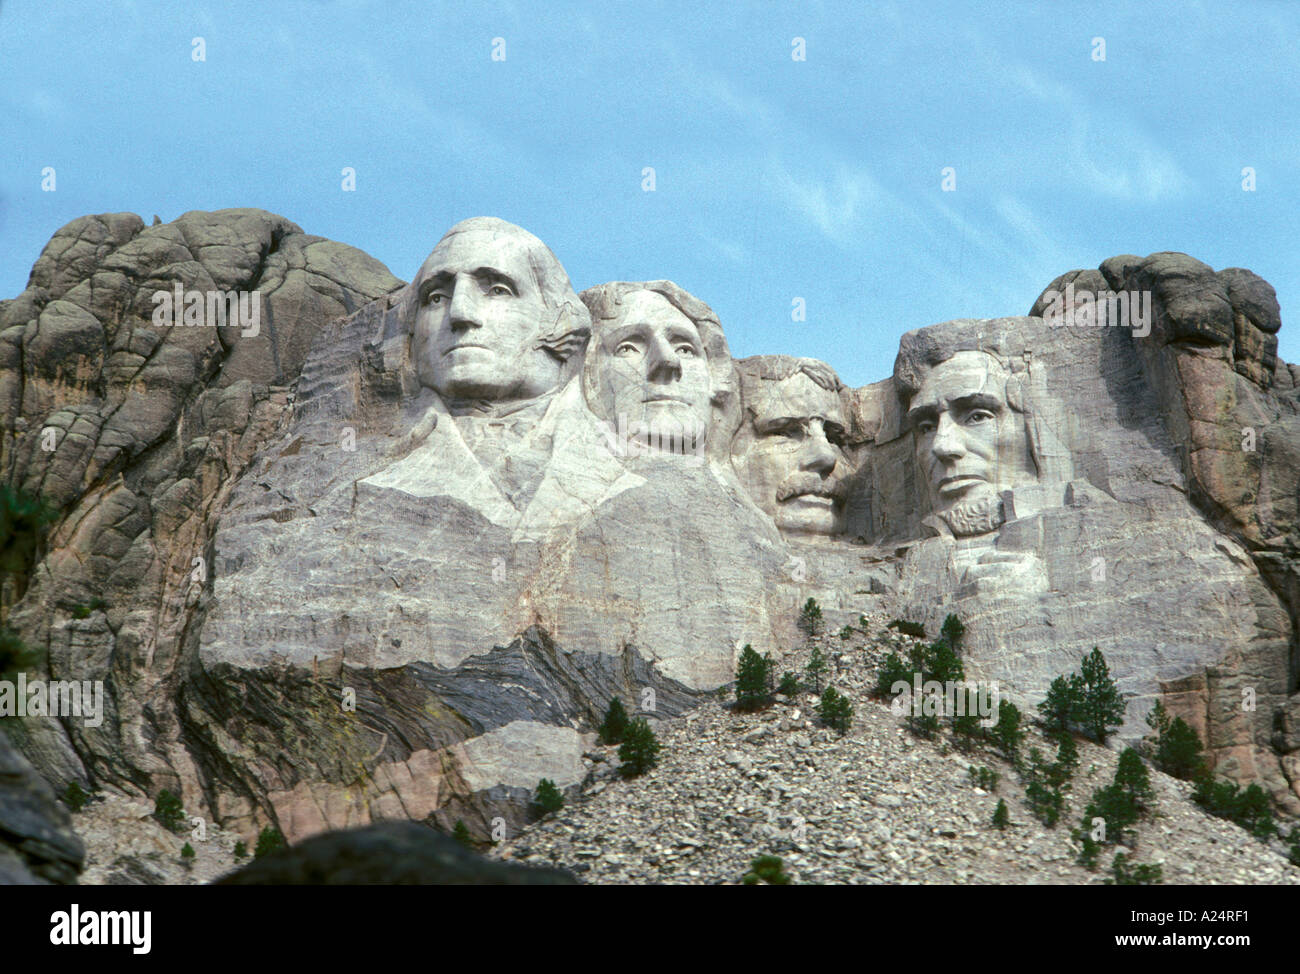 Mount Rushmore National Memorial located outside of Rapid City South Dakota Stock Photo